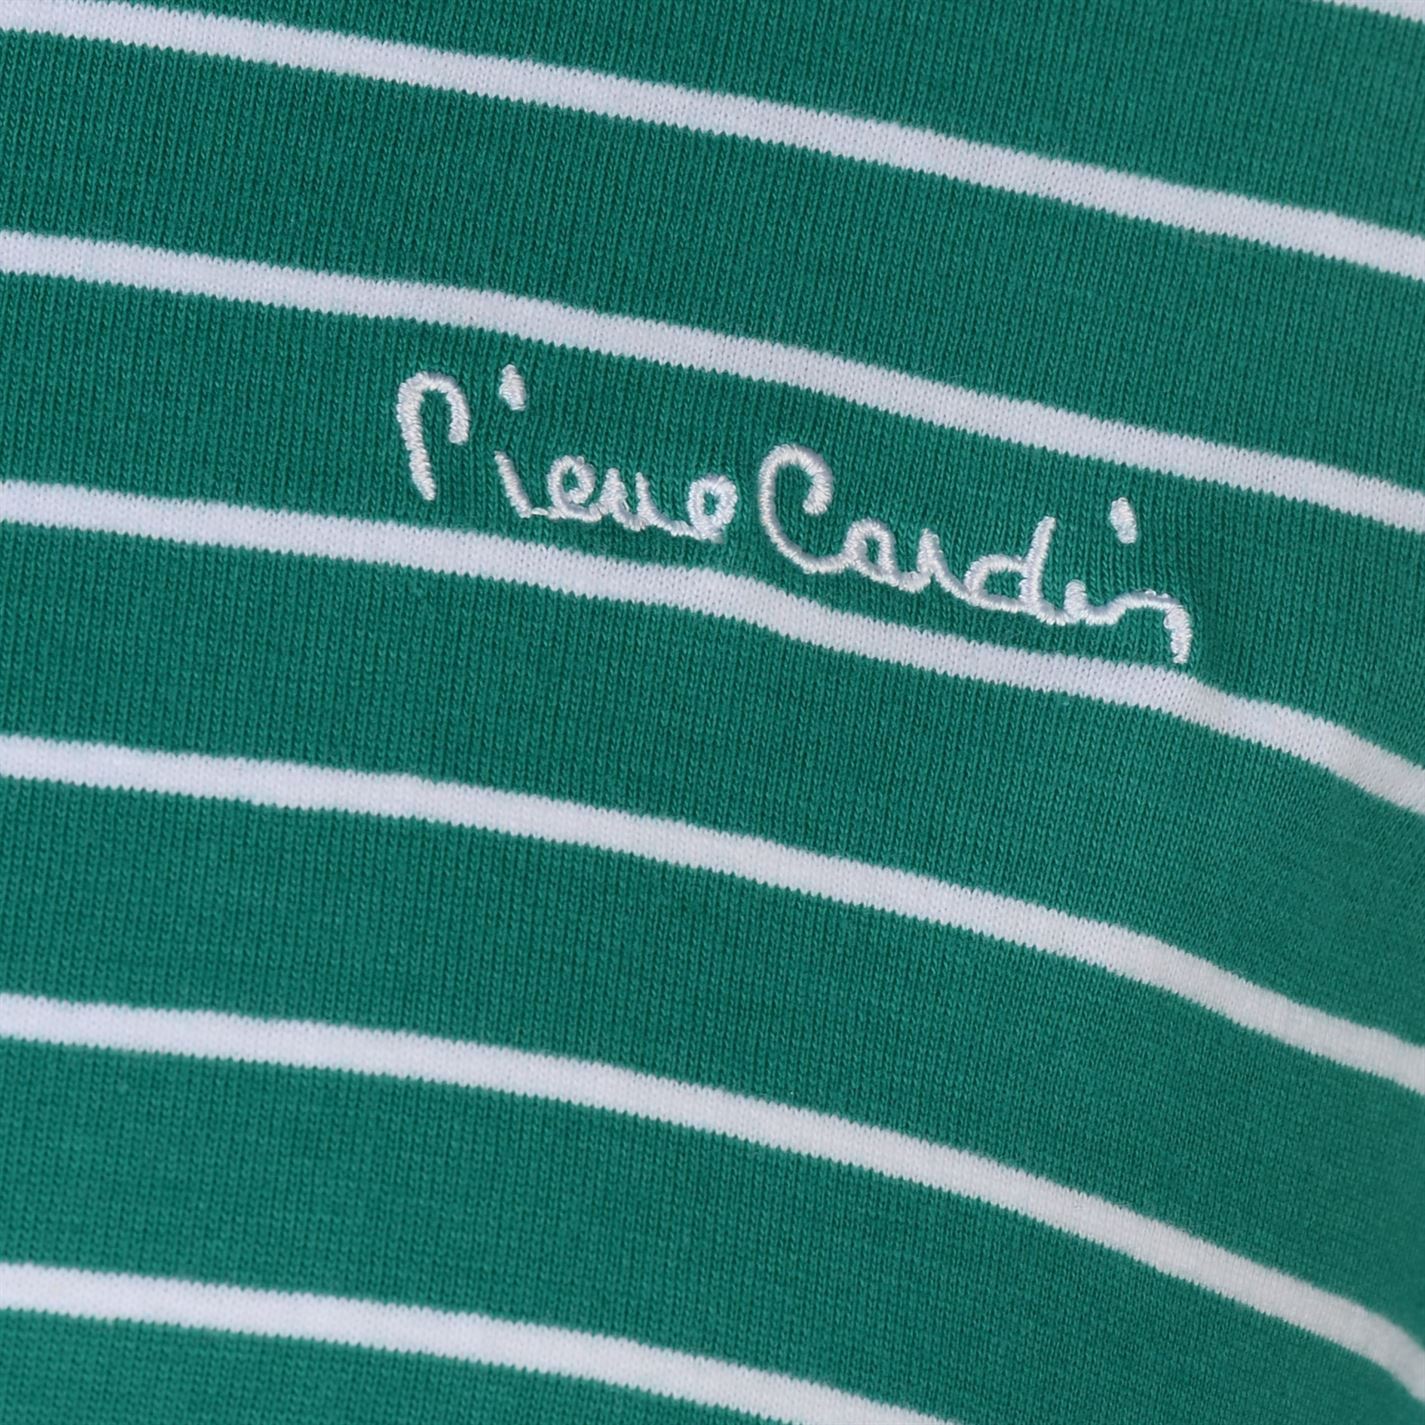 Pierre-Cardin-Mens-Stripe-Ringer-T-Shirt-Crew-Neck-Tee-Top-Short-Sleeve-Cotton thumbnail 13